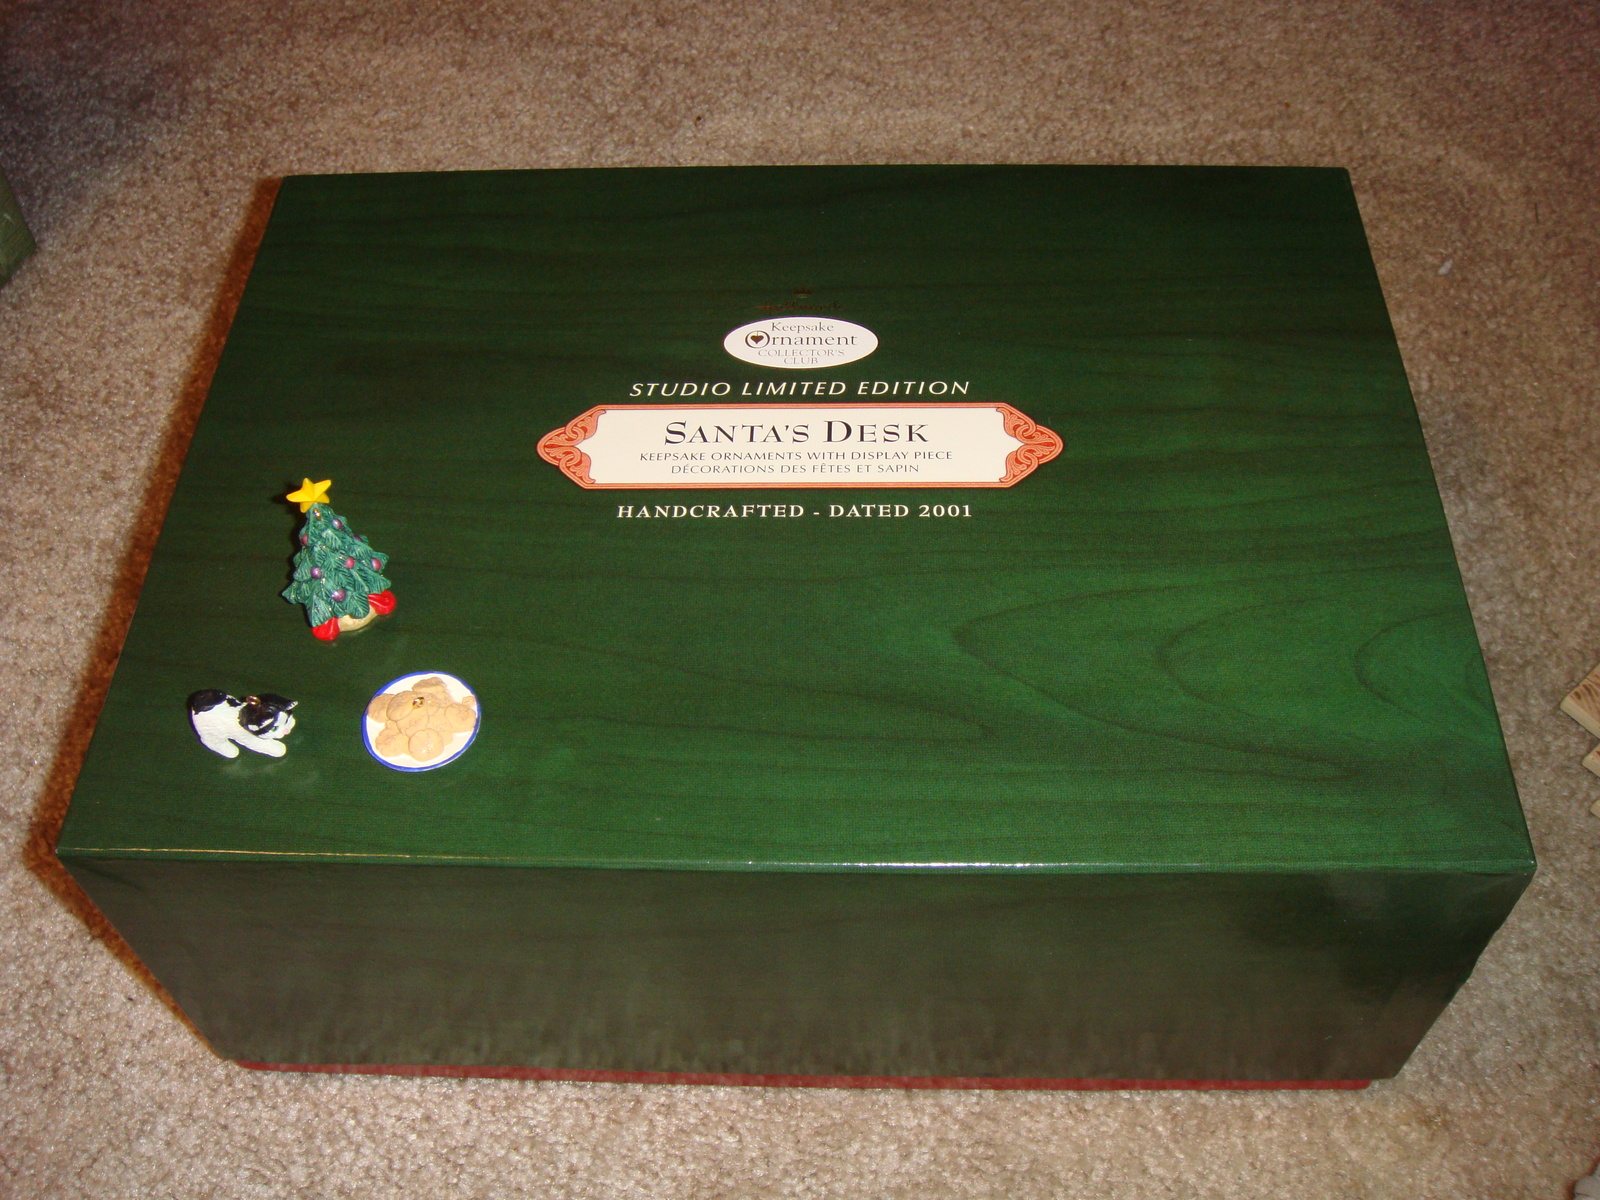 Hallmark Santa's Desk 2001 Limited Edition Studio Display image 9